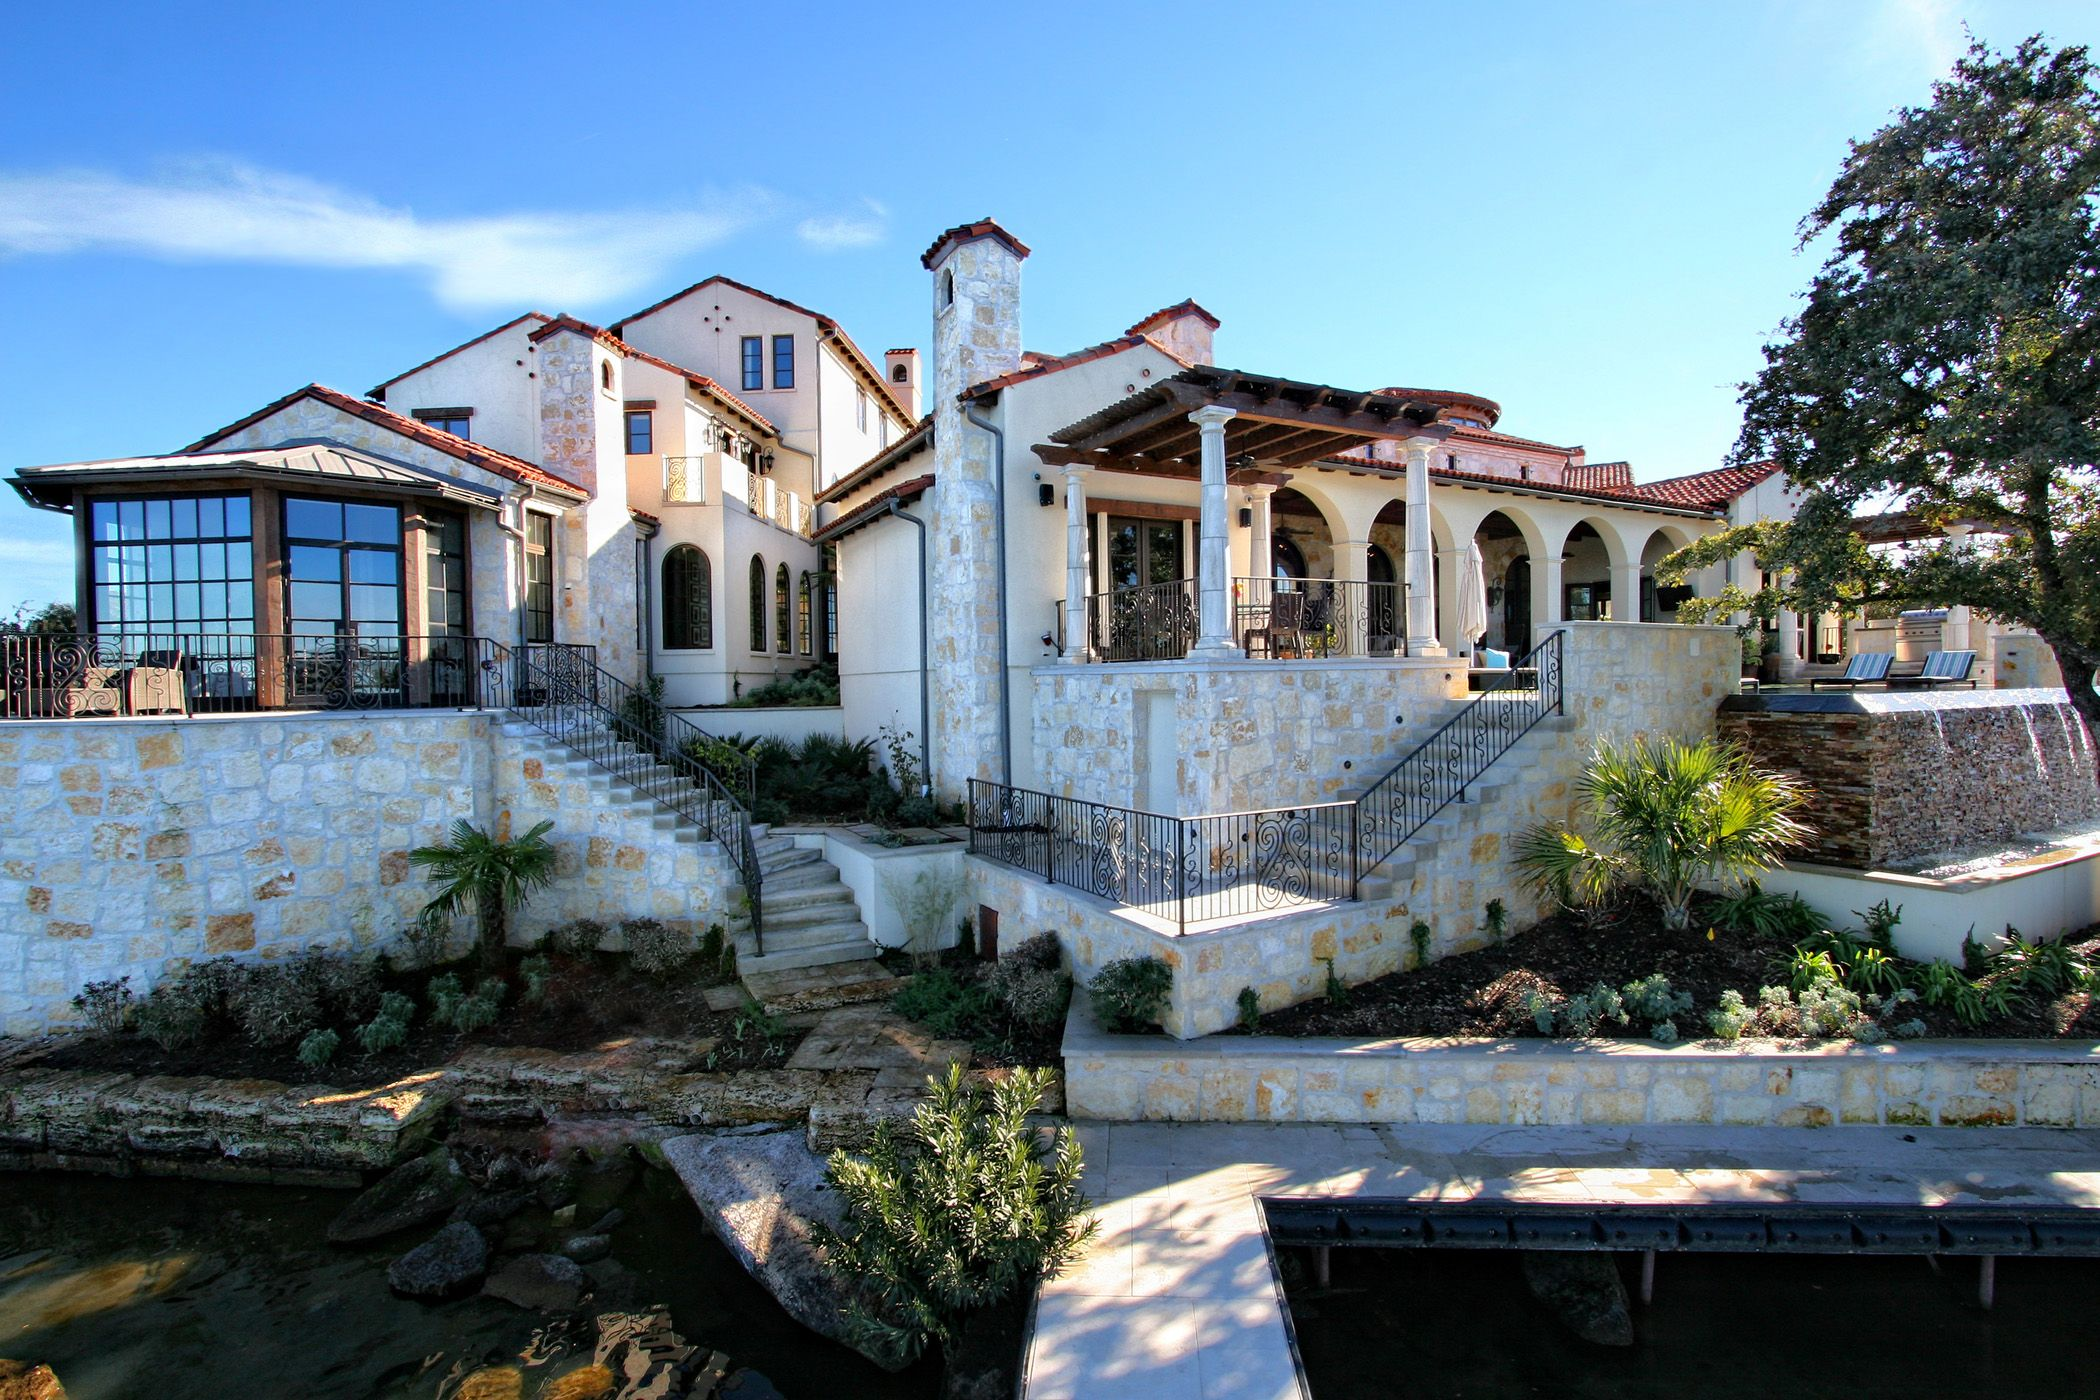 Horseshoe bay eclectic spanish lake house dockside view by for Idea homes austin